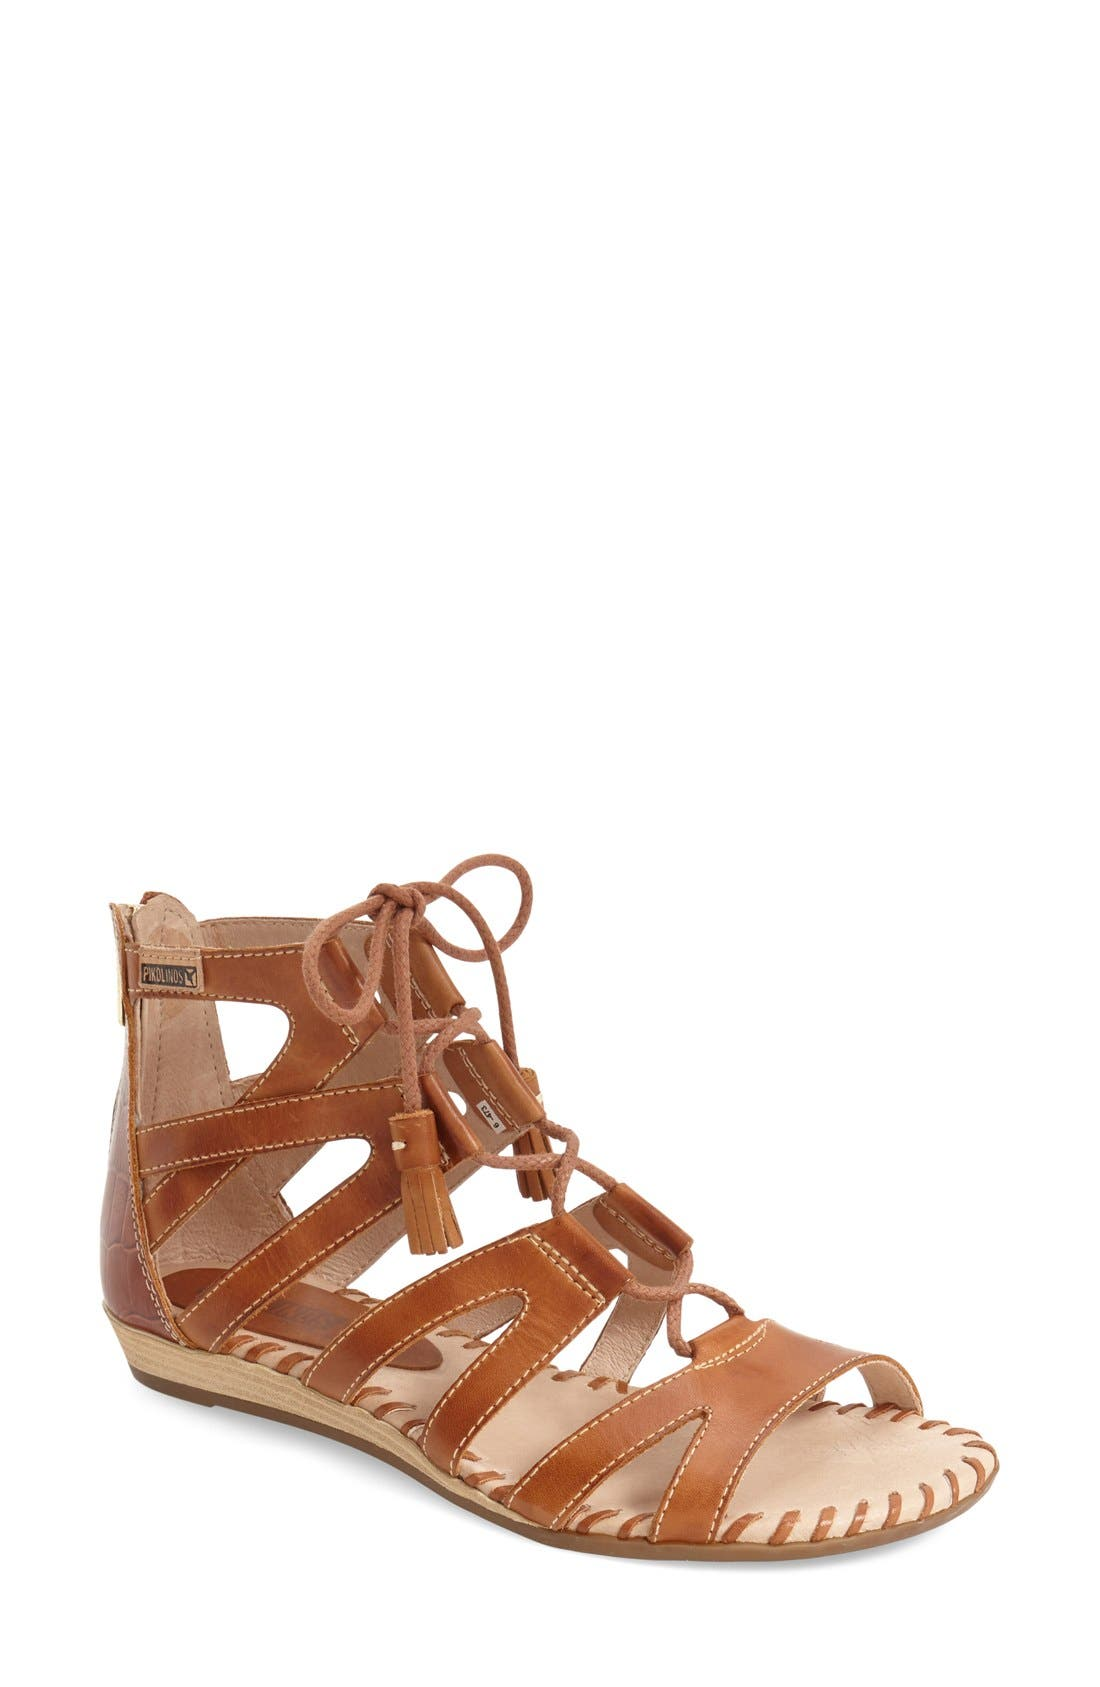 'Alcudia' Lace-Up Sandal,                         Main,                         color, Brandy/ Brandy Leather